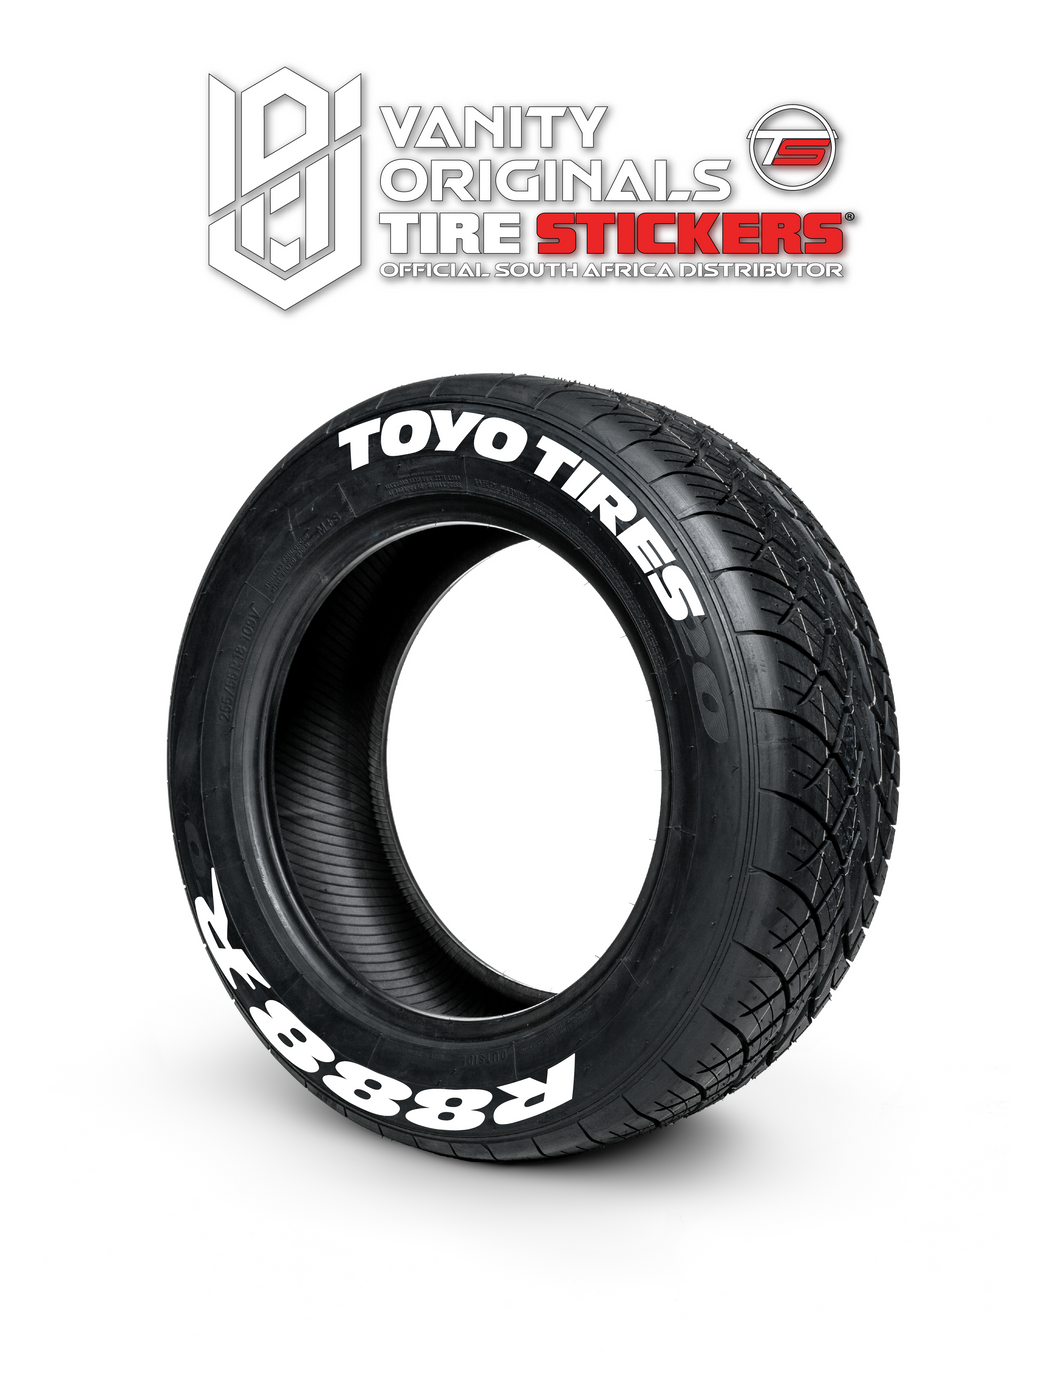 Toyo Tires R888 R ( 8x Rubber Decals, Adhesive & Instructions Included )